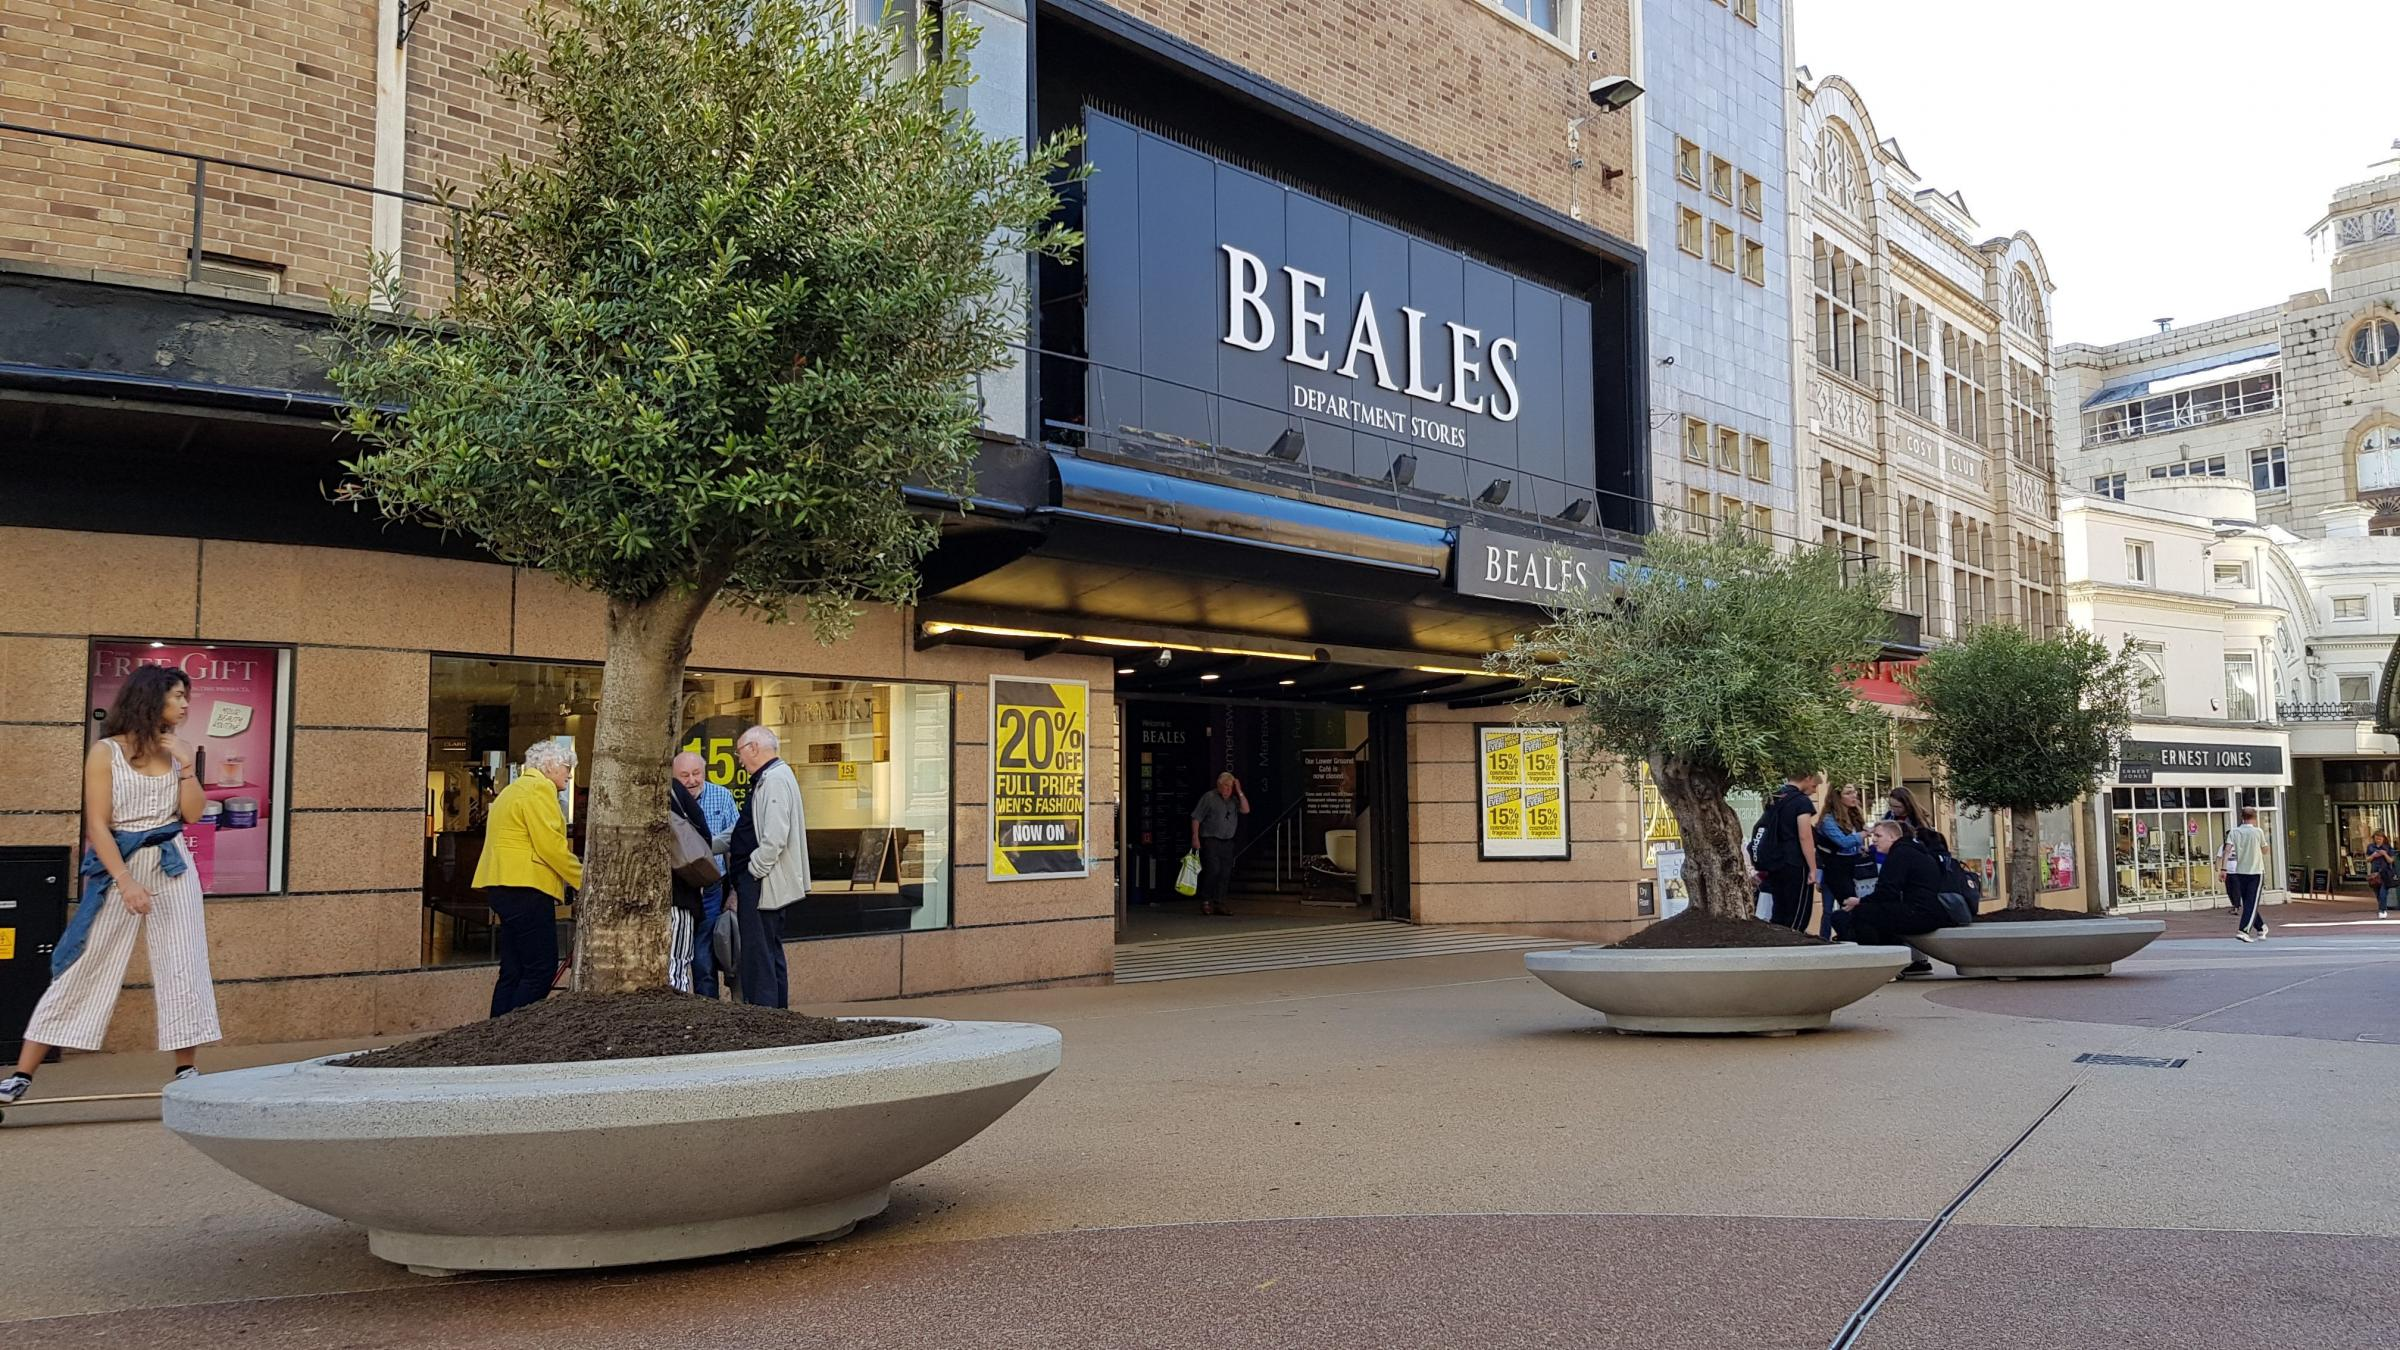 Trees arrive in Beale Place as work starts on new sushi restaurant